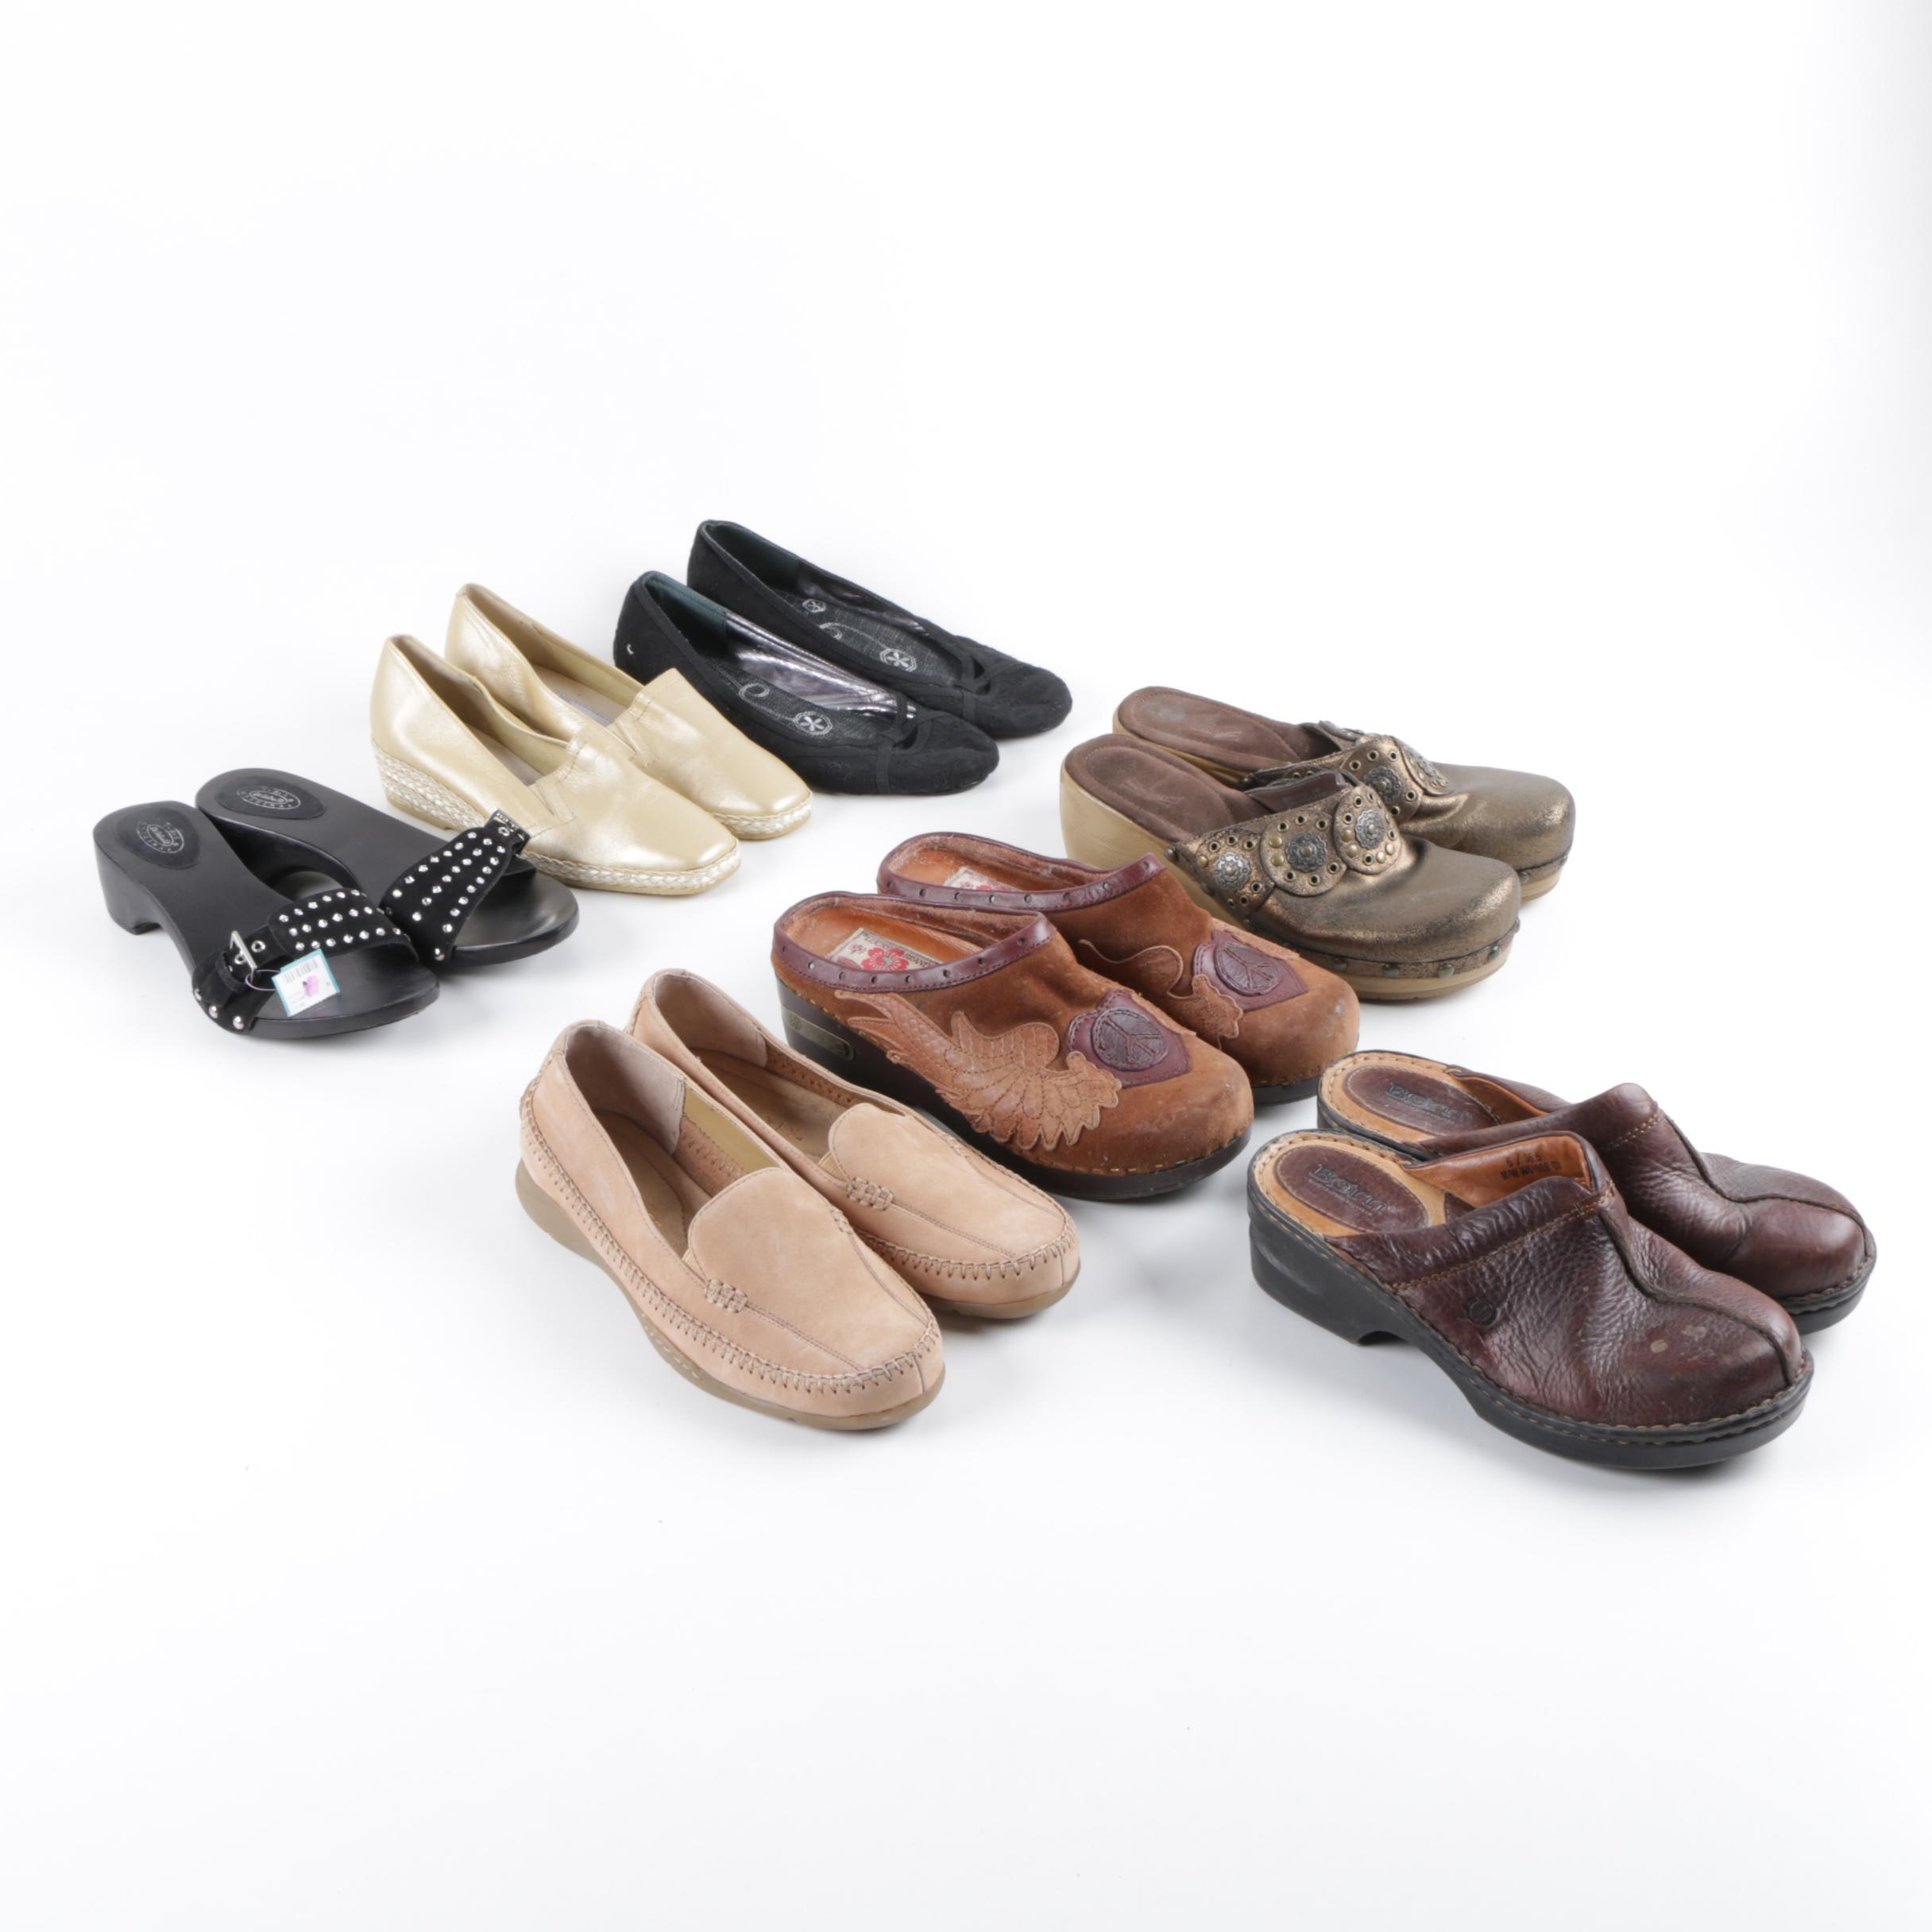 Women's Clogs, Flats and Slides Including Lucky Brand, Andre Assous and Born